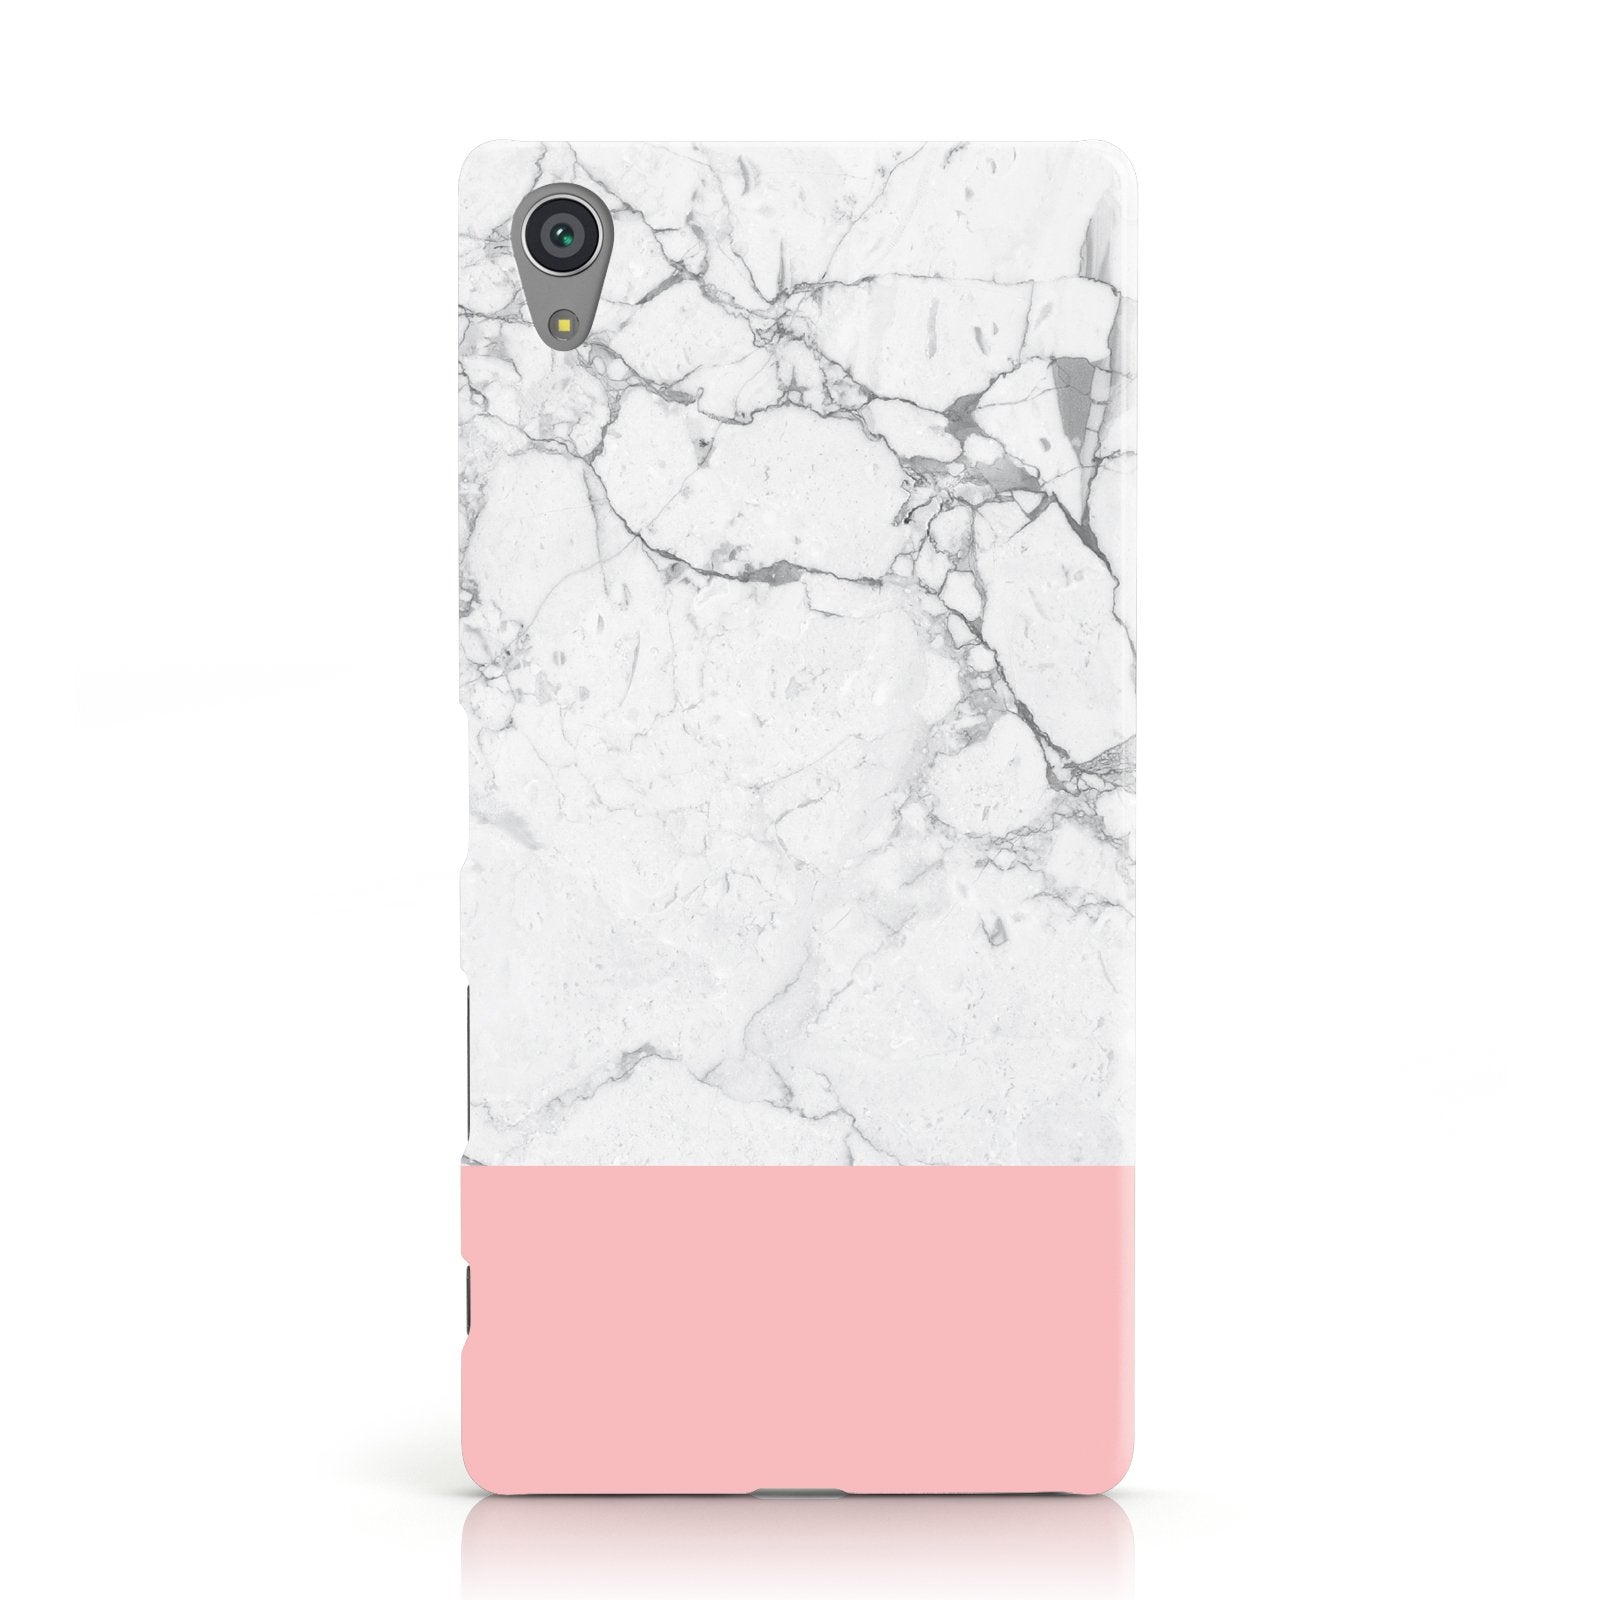 Marble White Carrara Pink Sony Xperia Case